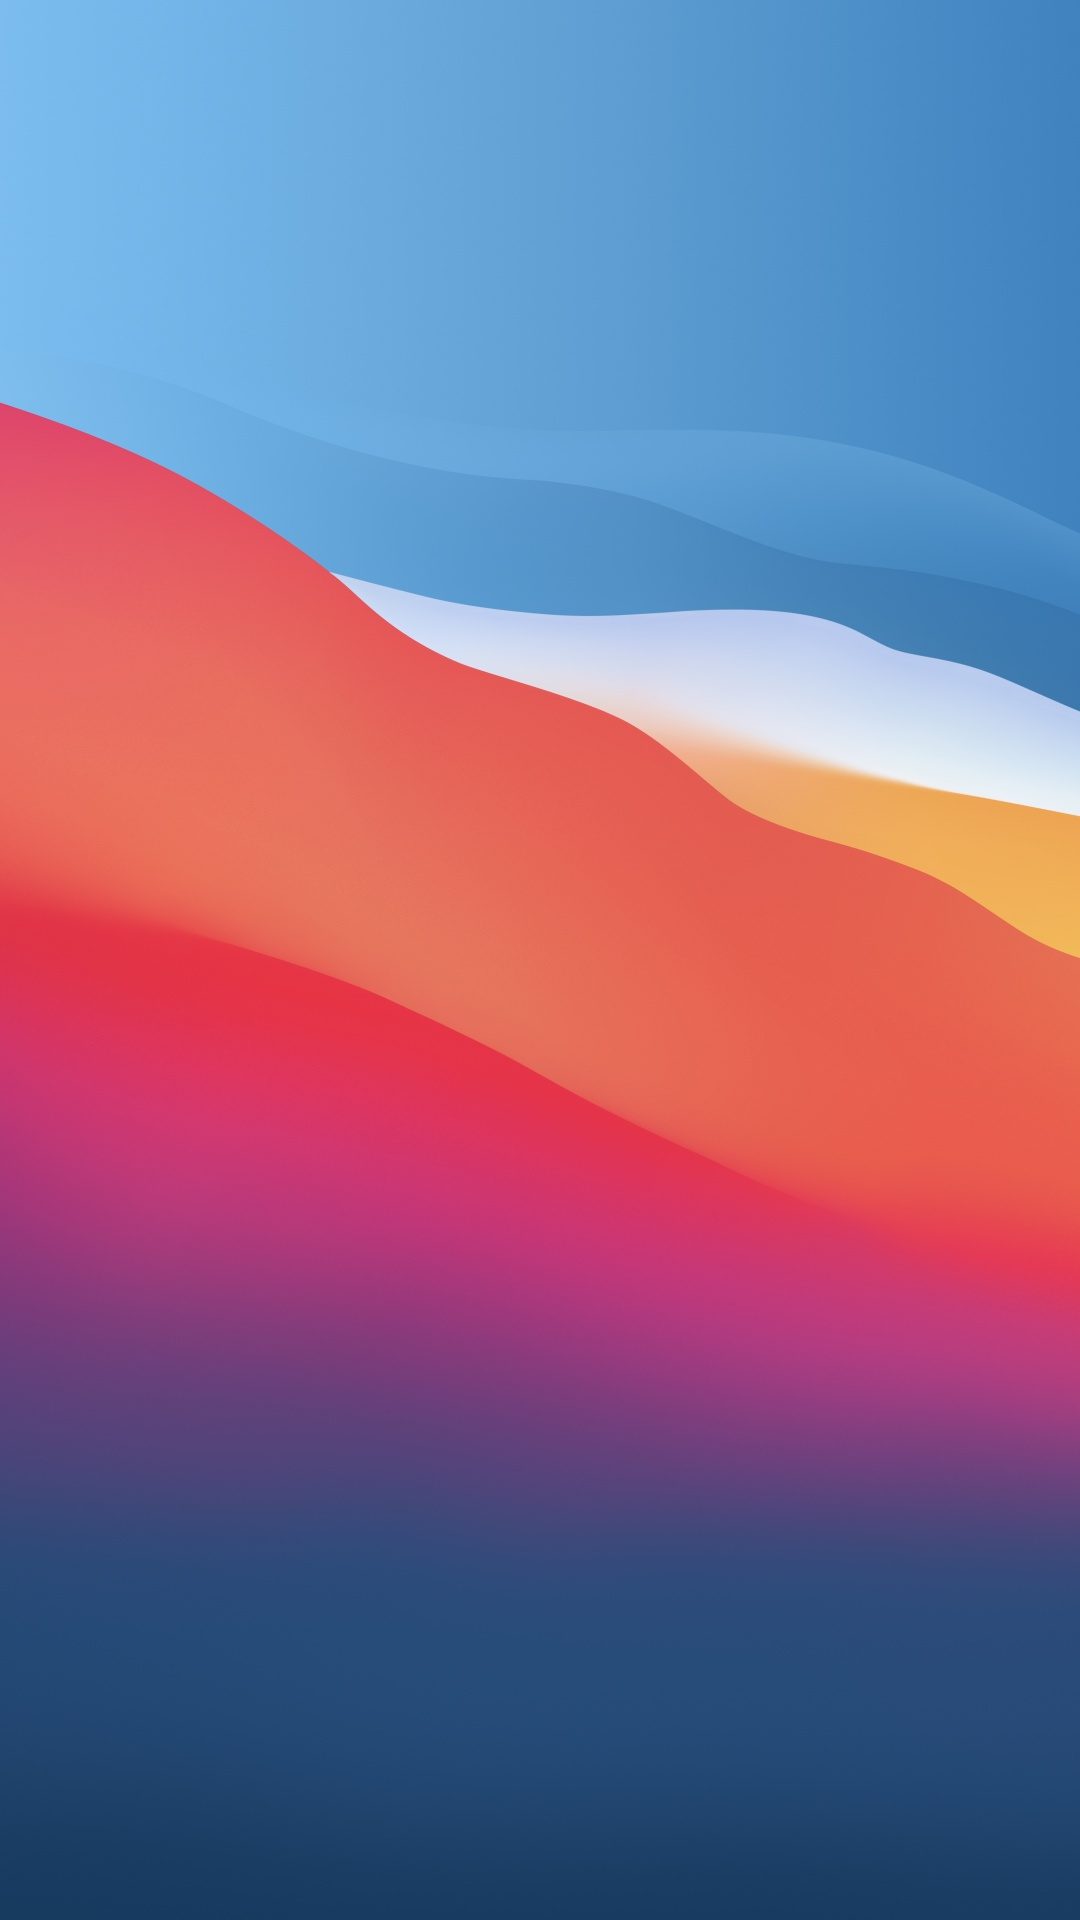 Waves for mac torrent